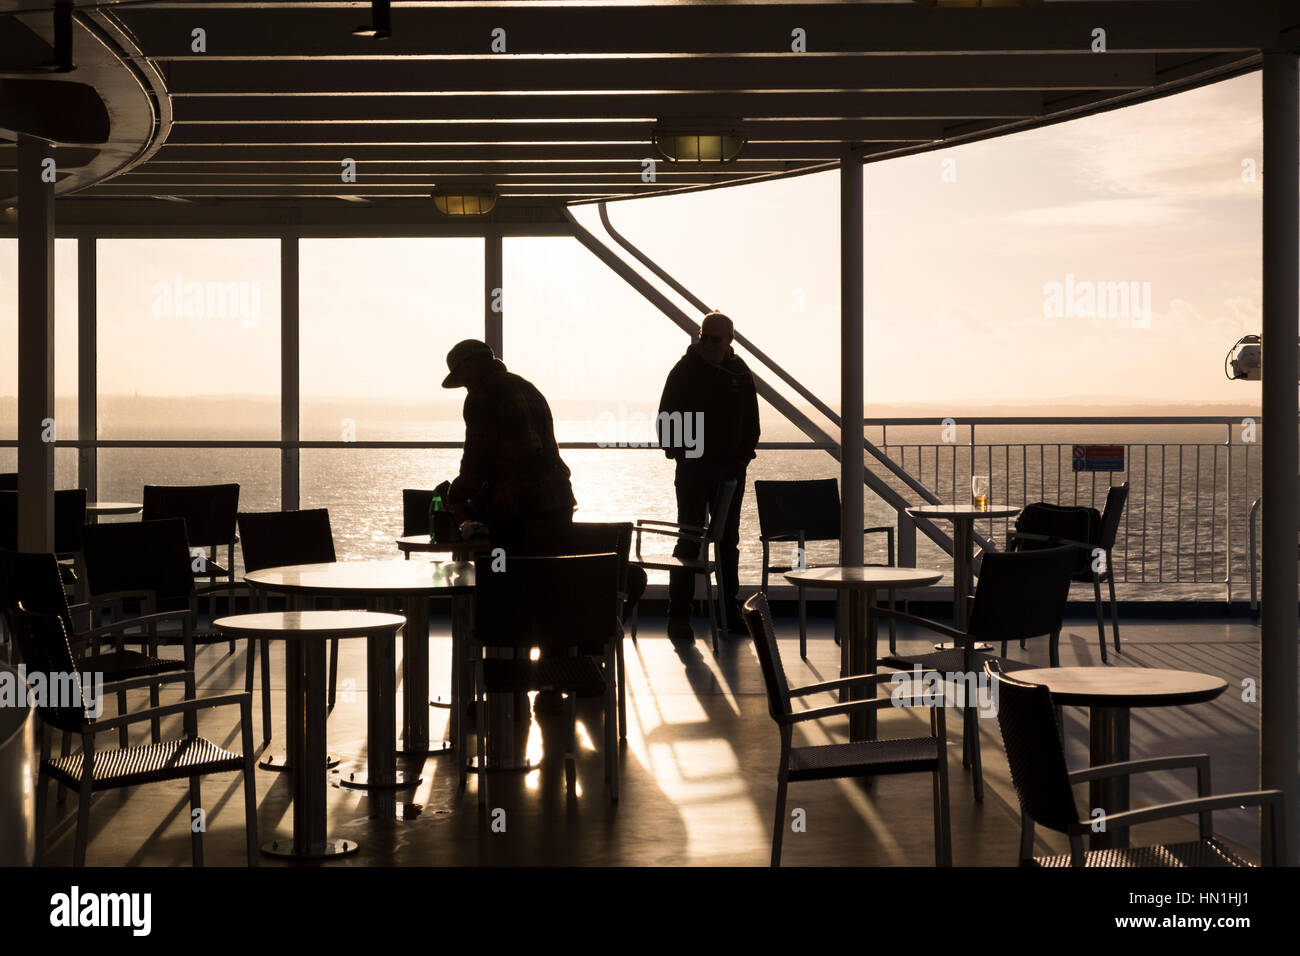 Silhouettes of people tables and chairs on the deck of a small ship - Stock Image